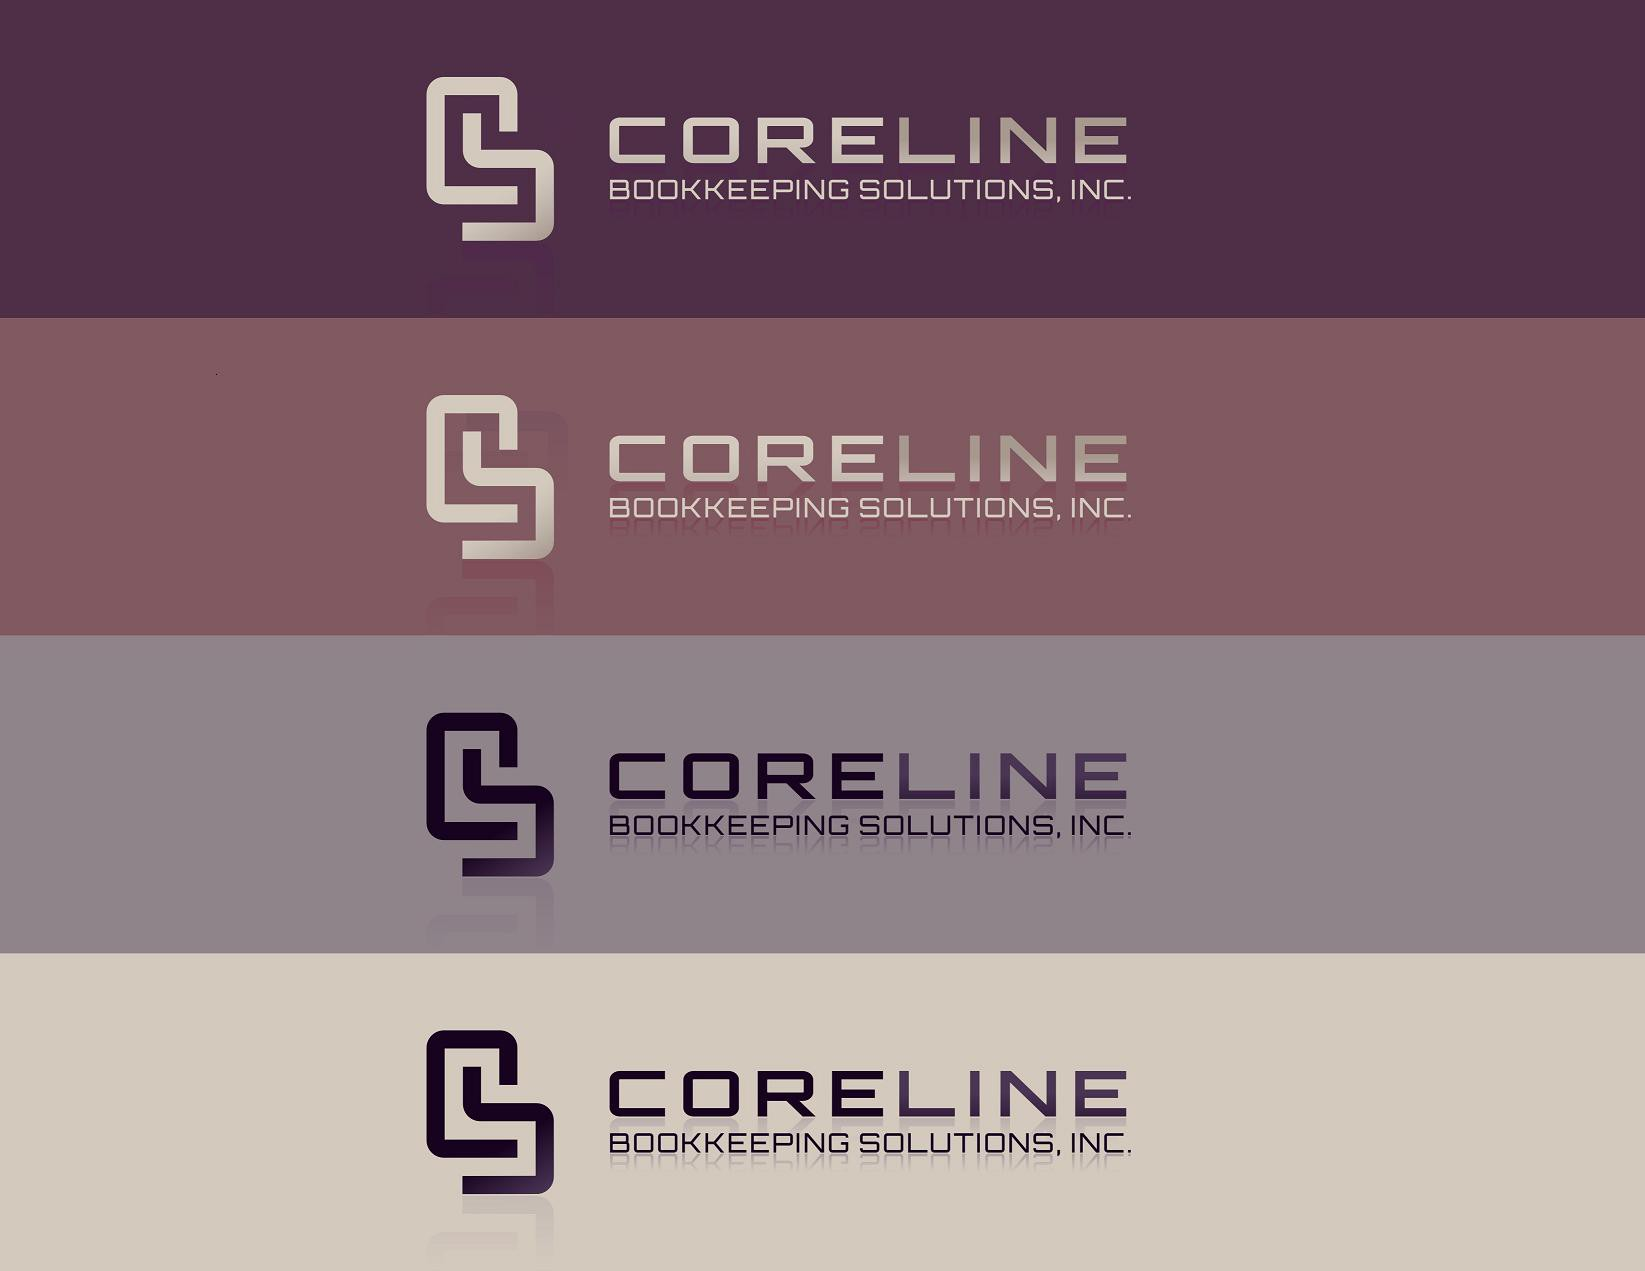 Create a logo for a bookkeeping company - CoreLine Bookkeeping Solutions, Inc.